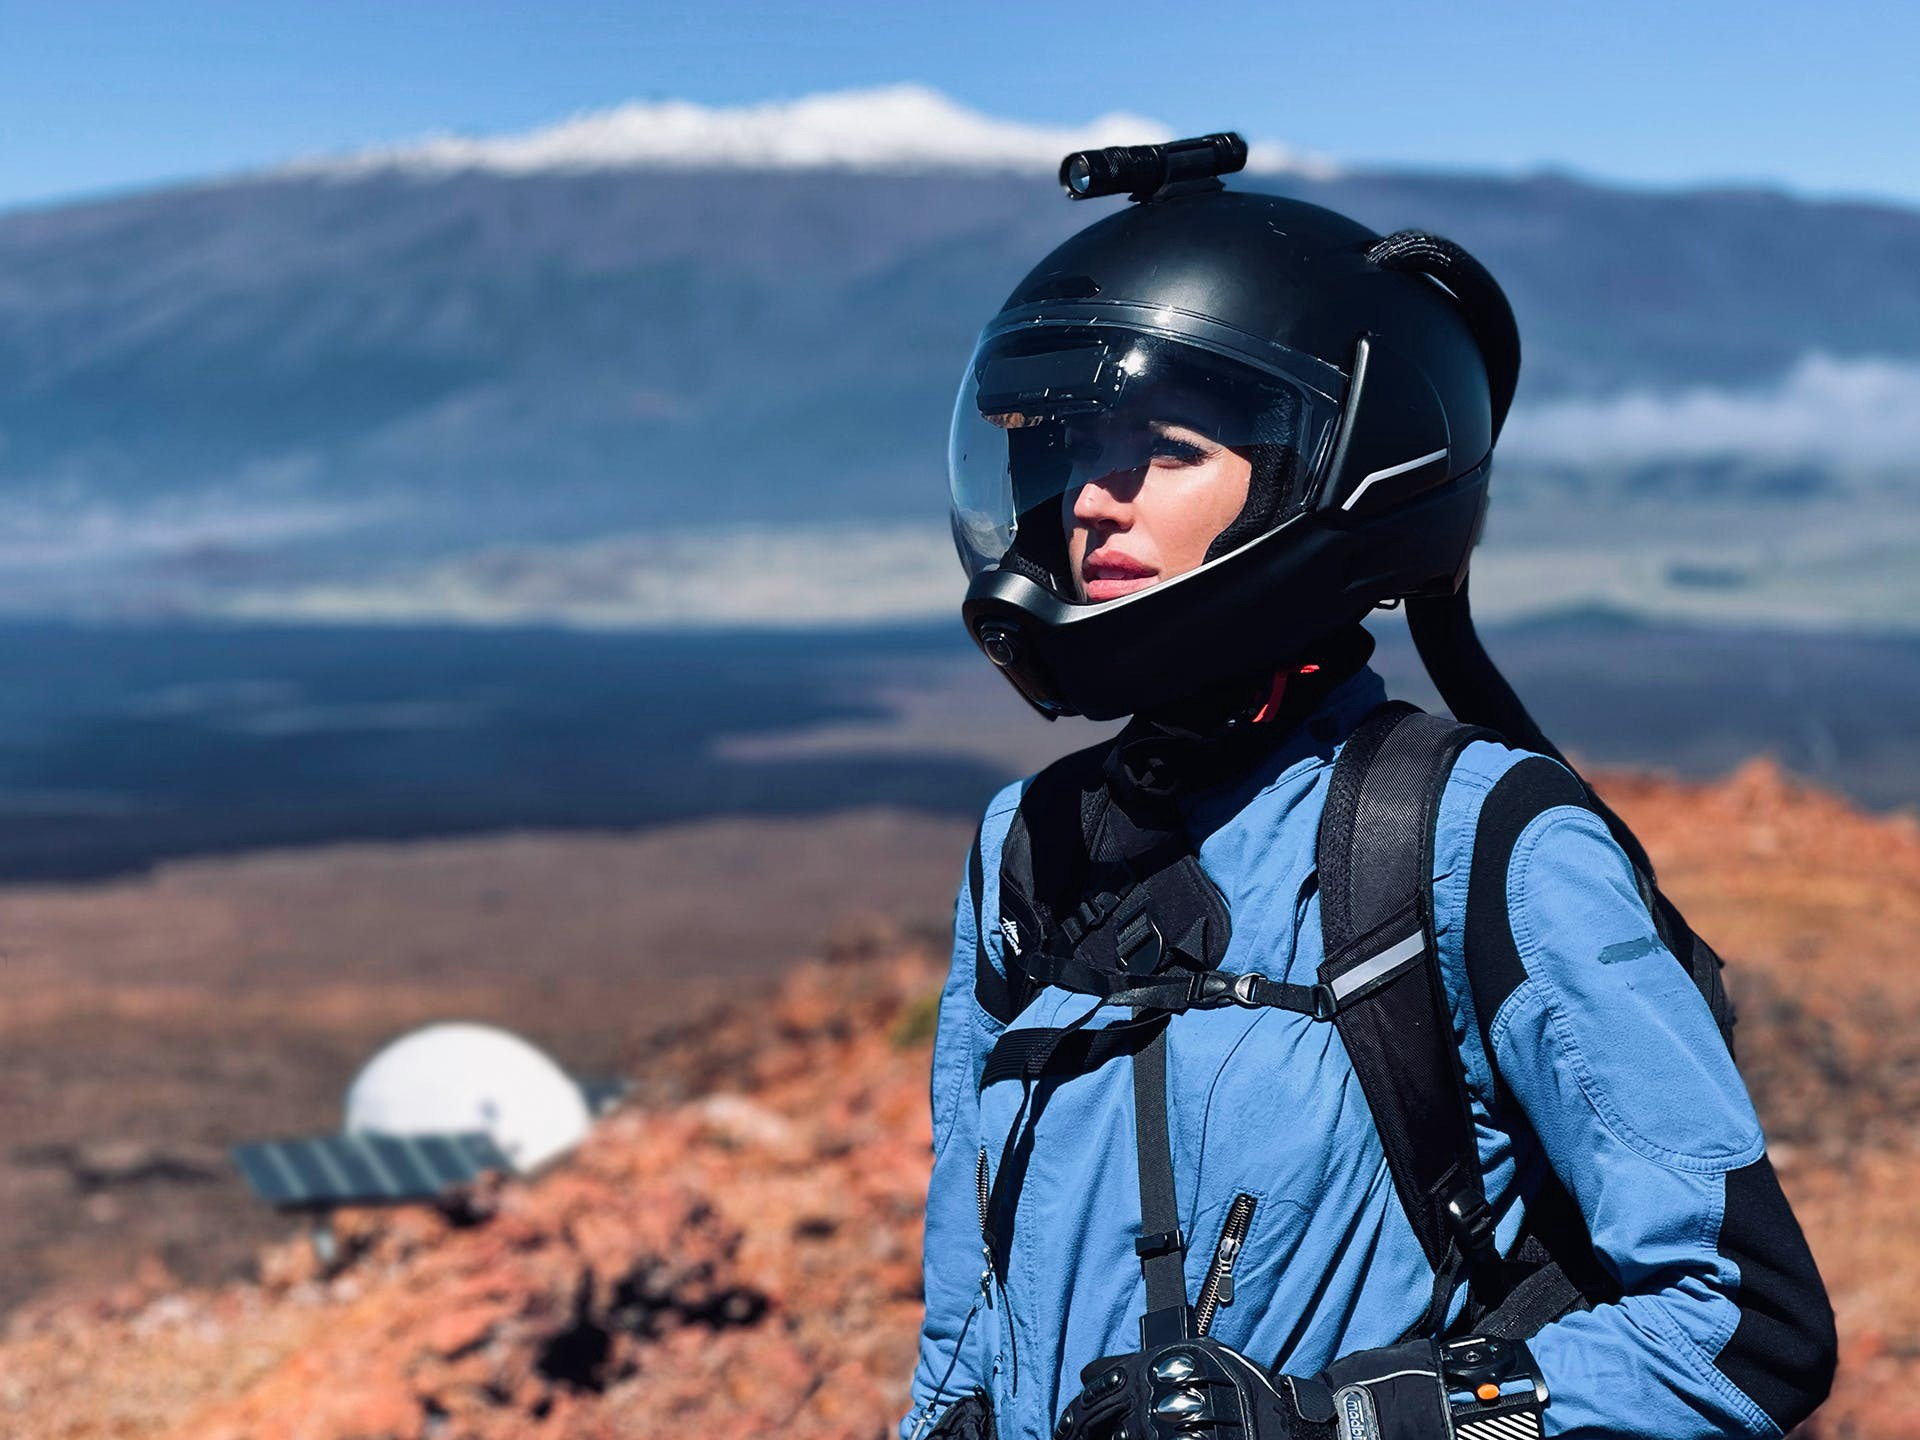 Hillary Coe dressed in a space suit for an analog Mars mission